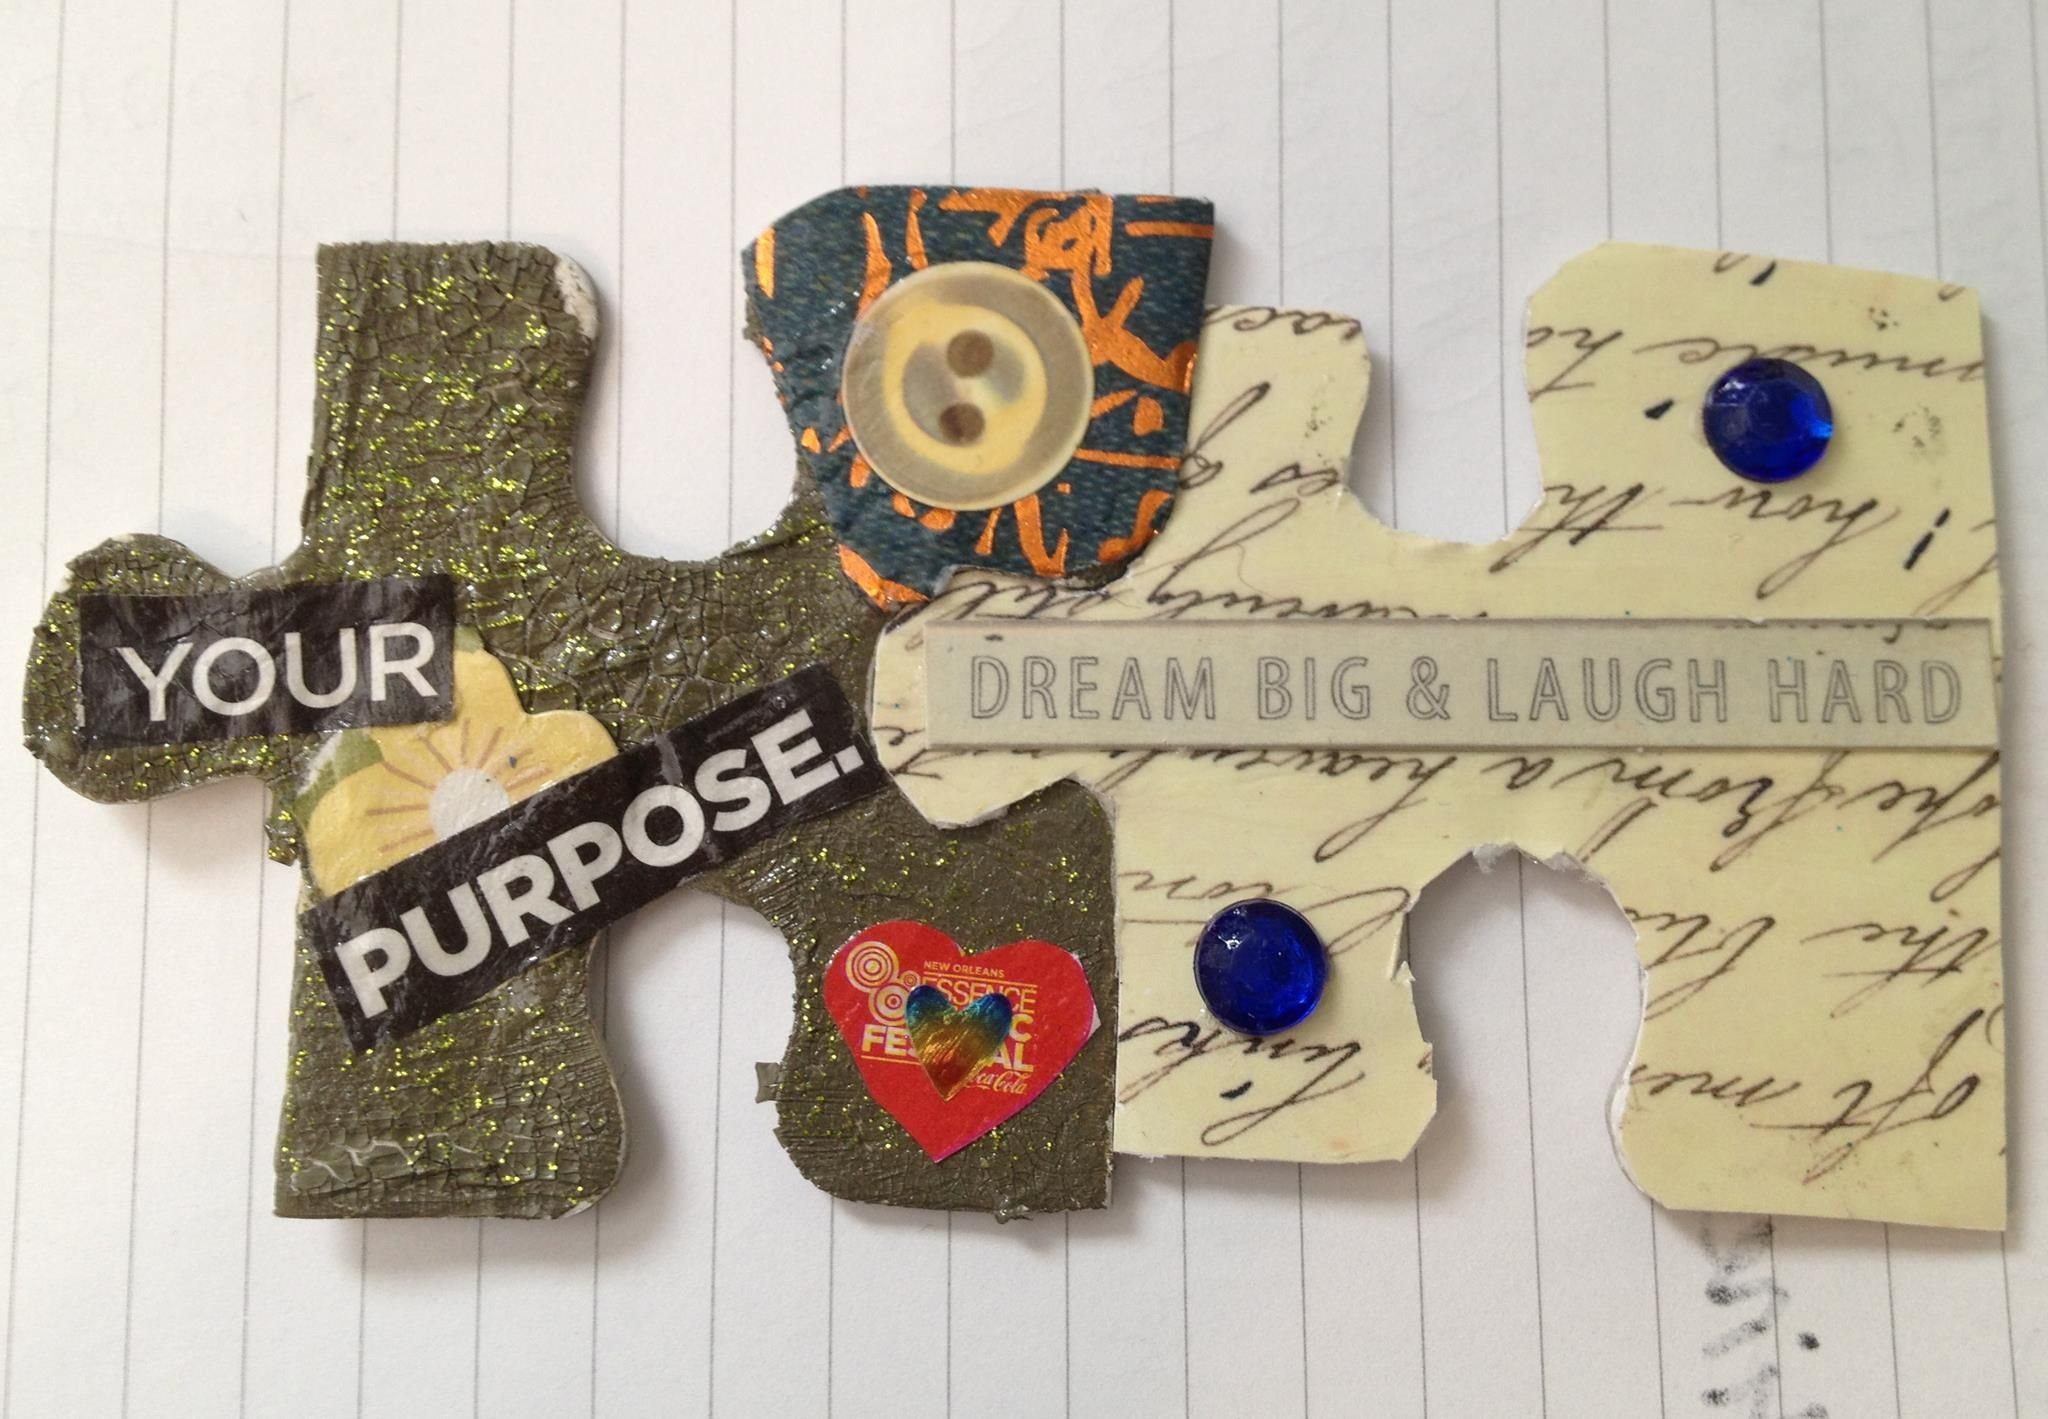 Your Purpose: Dream Big and Laugh Hard by Lisa Miller for Art Therapy + Happiness Project #arttherapy